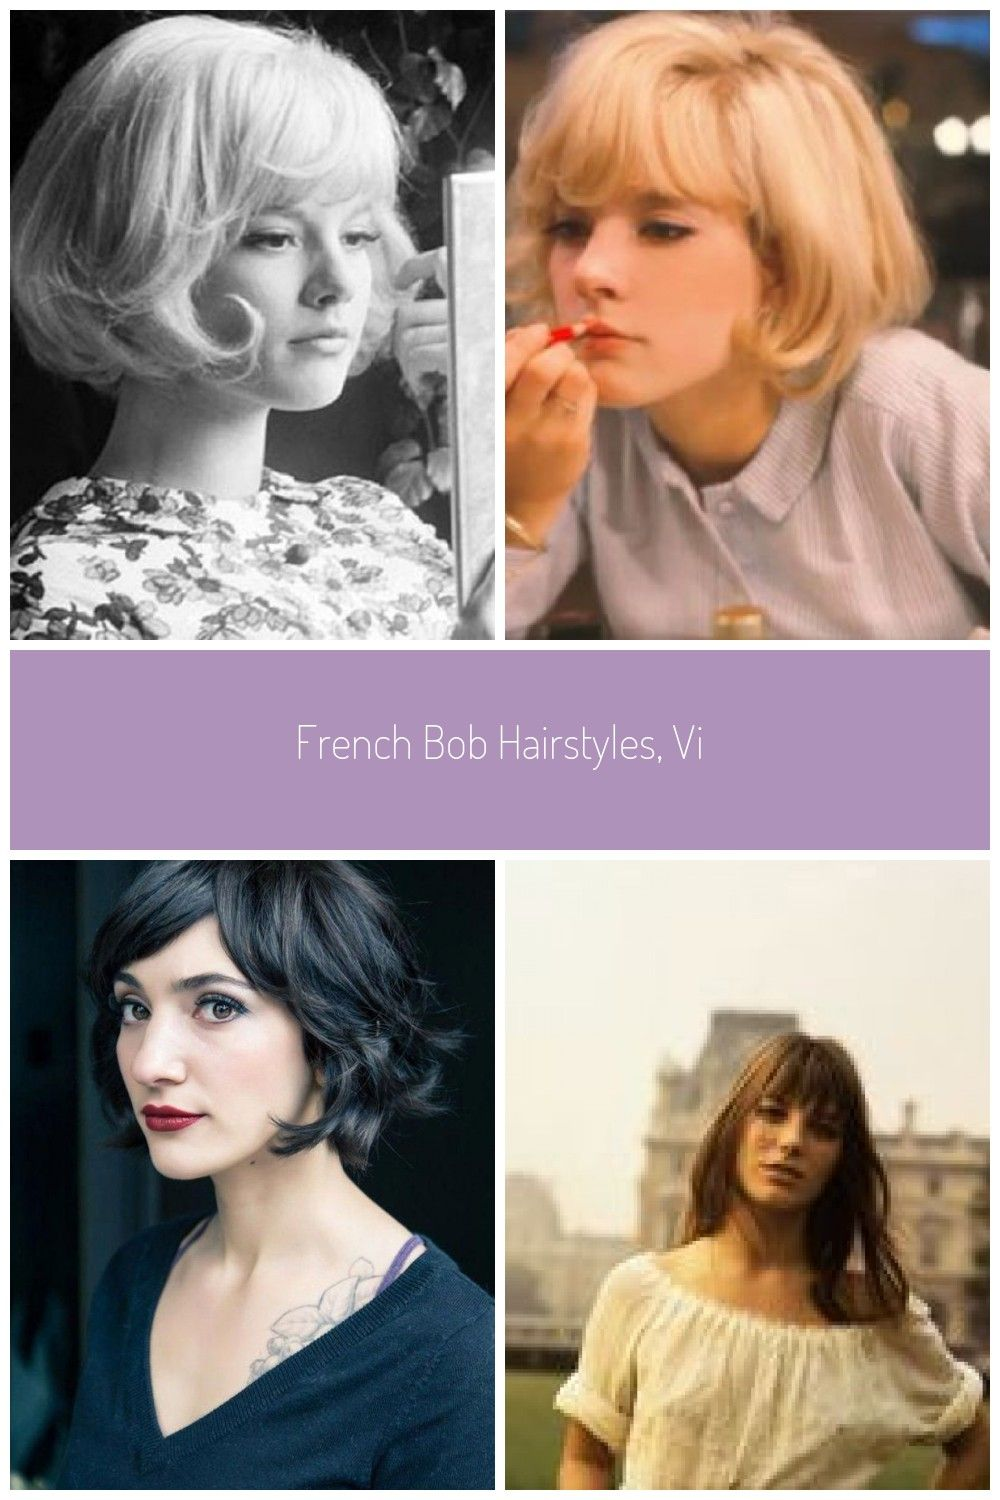 French Bob Hairstyles Vintage 60s Styles Haircuts Hairstyles French Haircuts Hairstyles Styles Vintag Messy Bob Hairstyles Hair Styles French Haircut